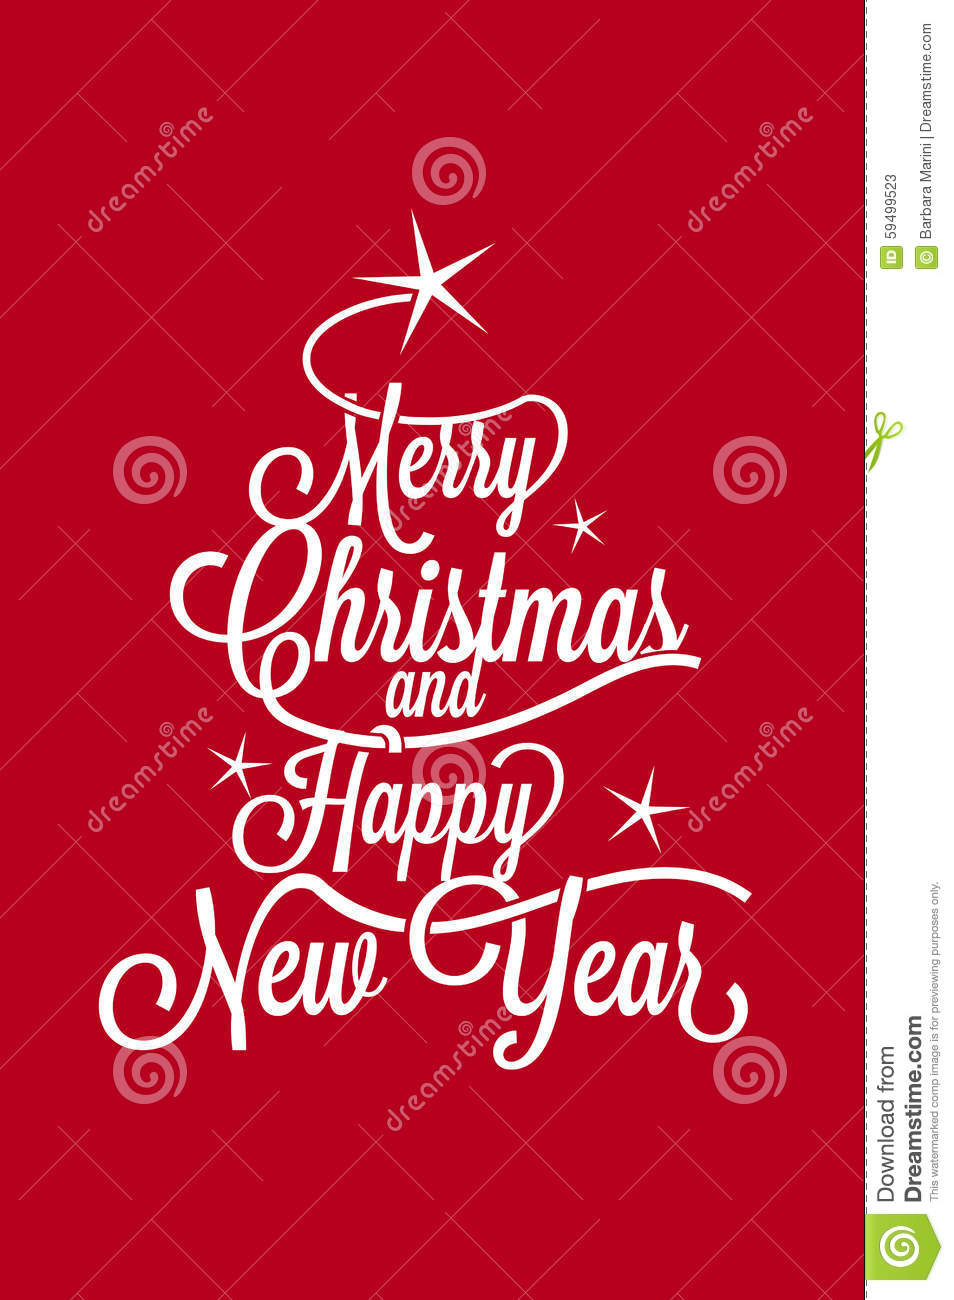 Merry Christmas And Happy New Year Postcard Stock Vector - Image ...